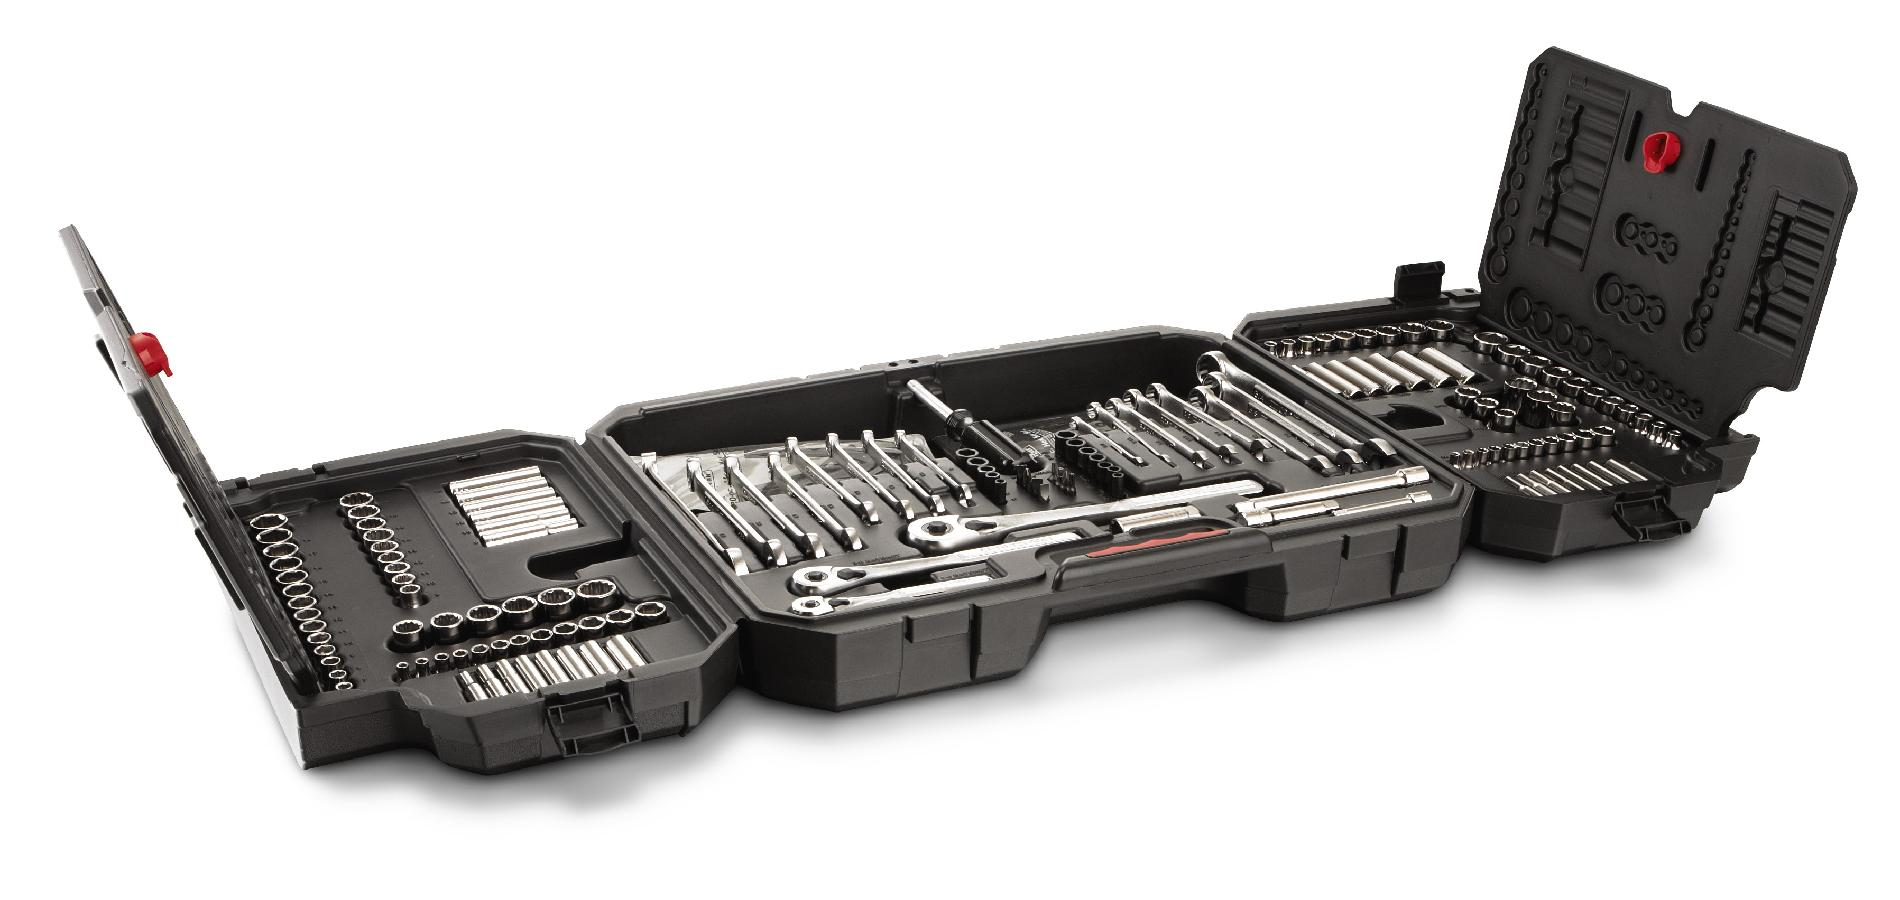 Craftsman 192 pc. Mechanics Tool Set with Trifold Case